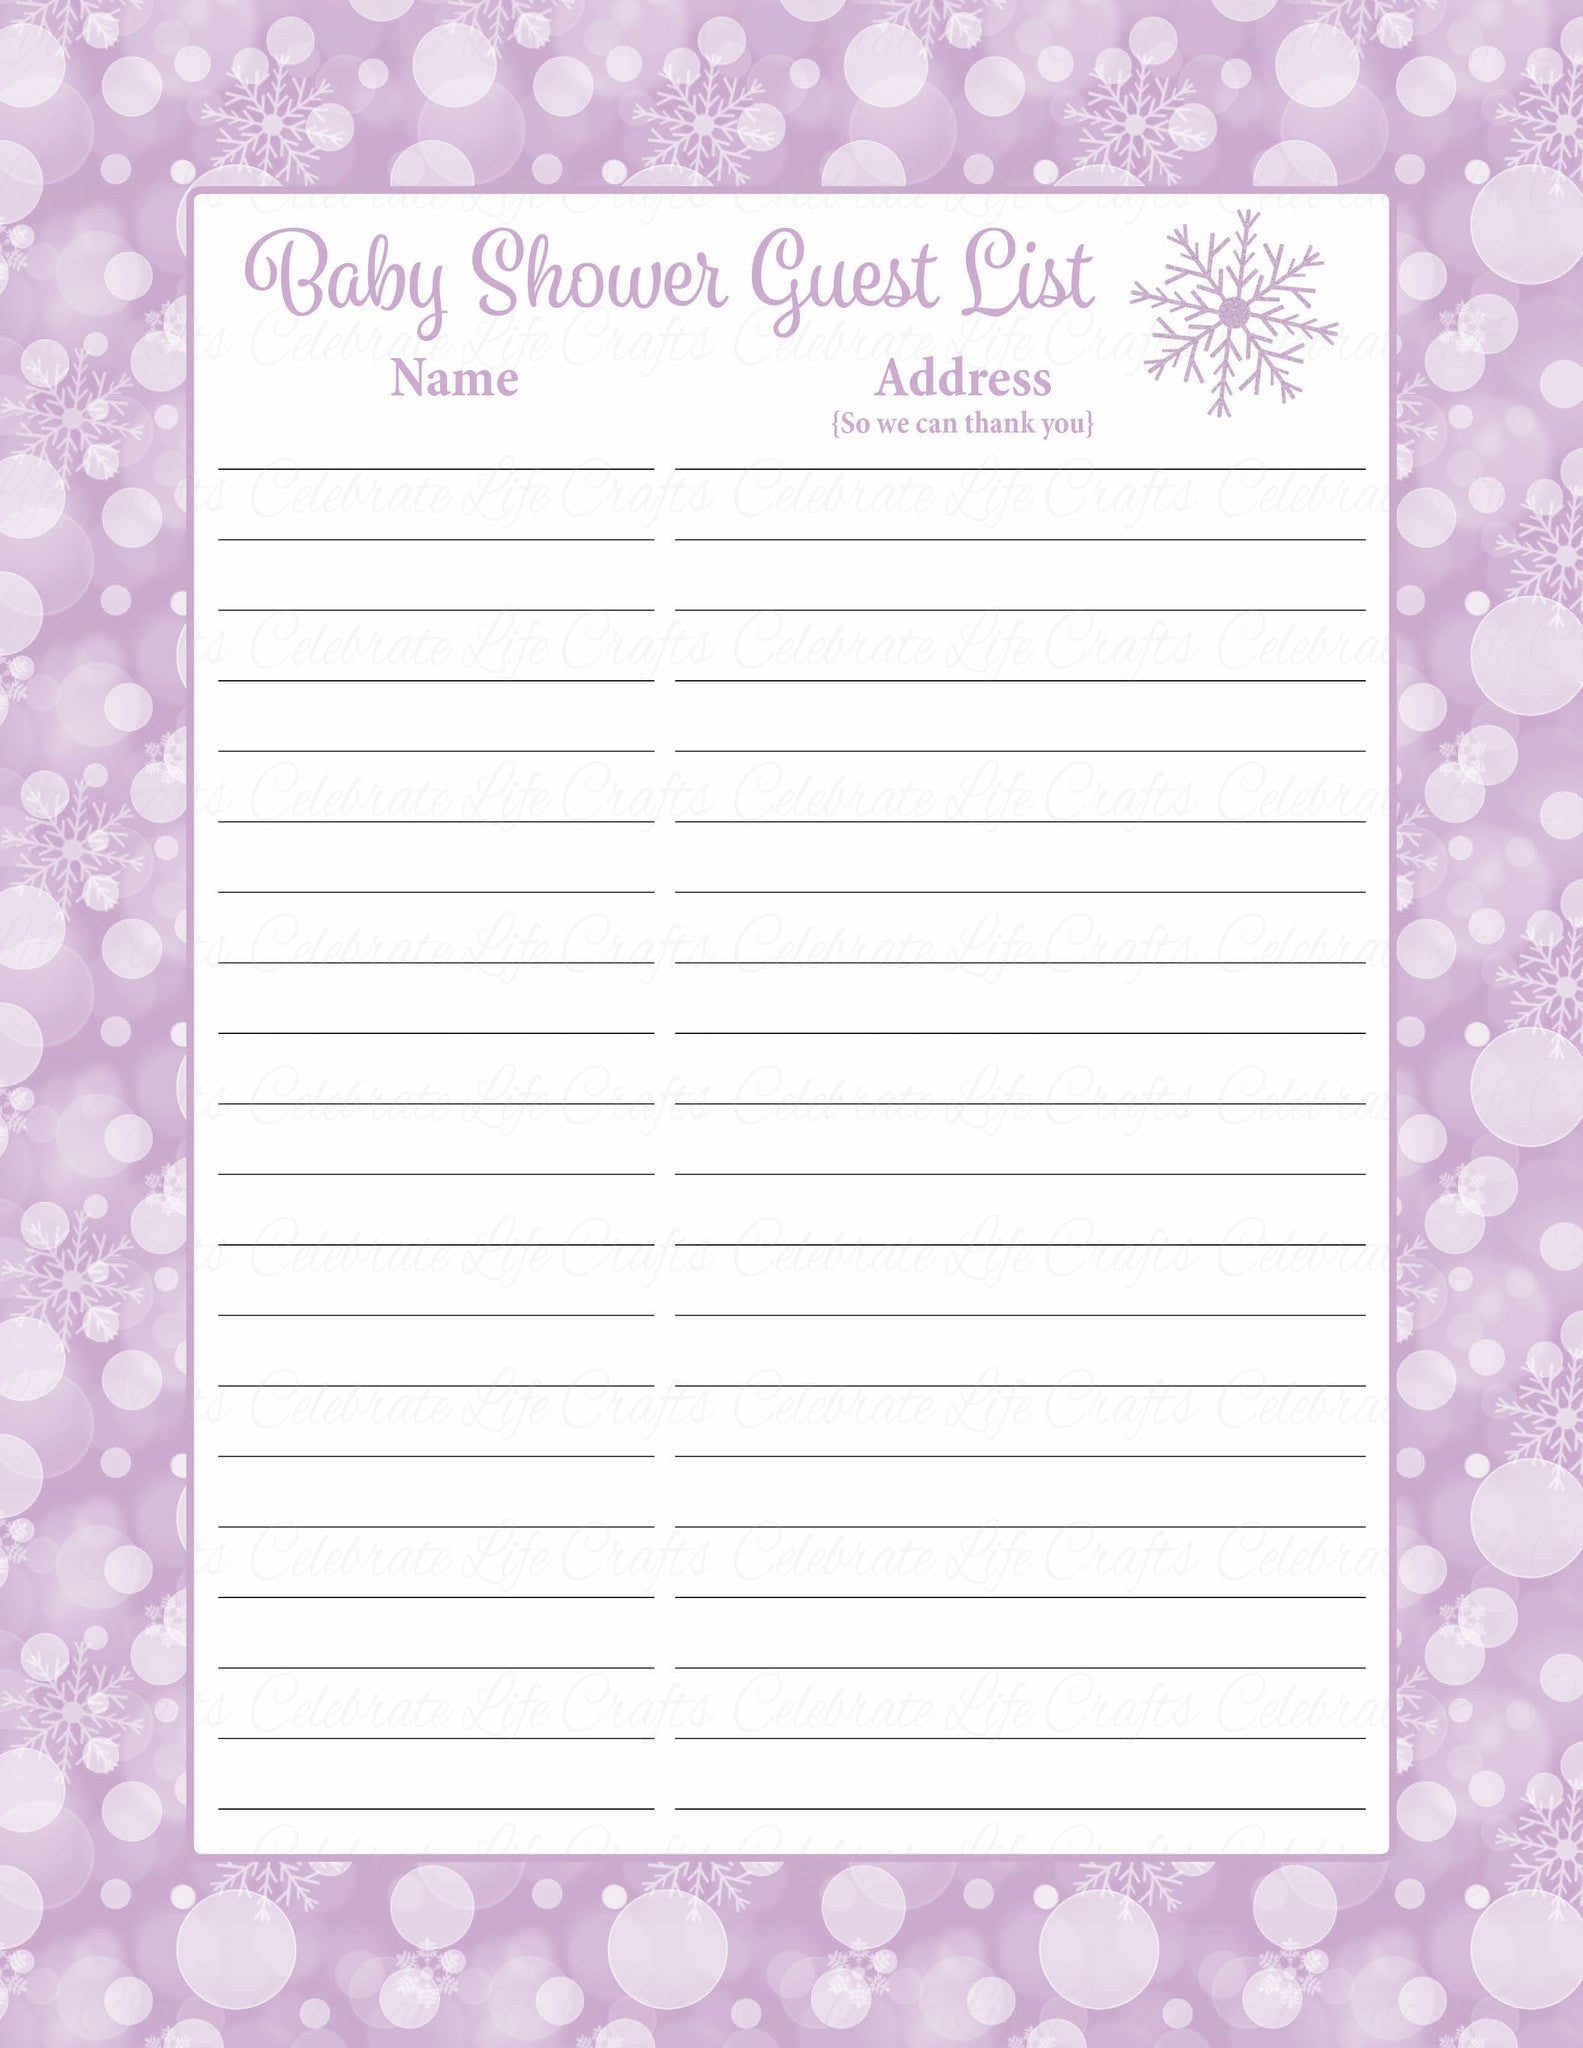 picture relating to Free Printable Baby Shower Guest List identify Youngster Shower Visitor Listing Mounted - Printable Obtain - Pink Bokeh Wintertime Youngster Shower Decorations - B22004